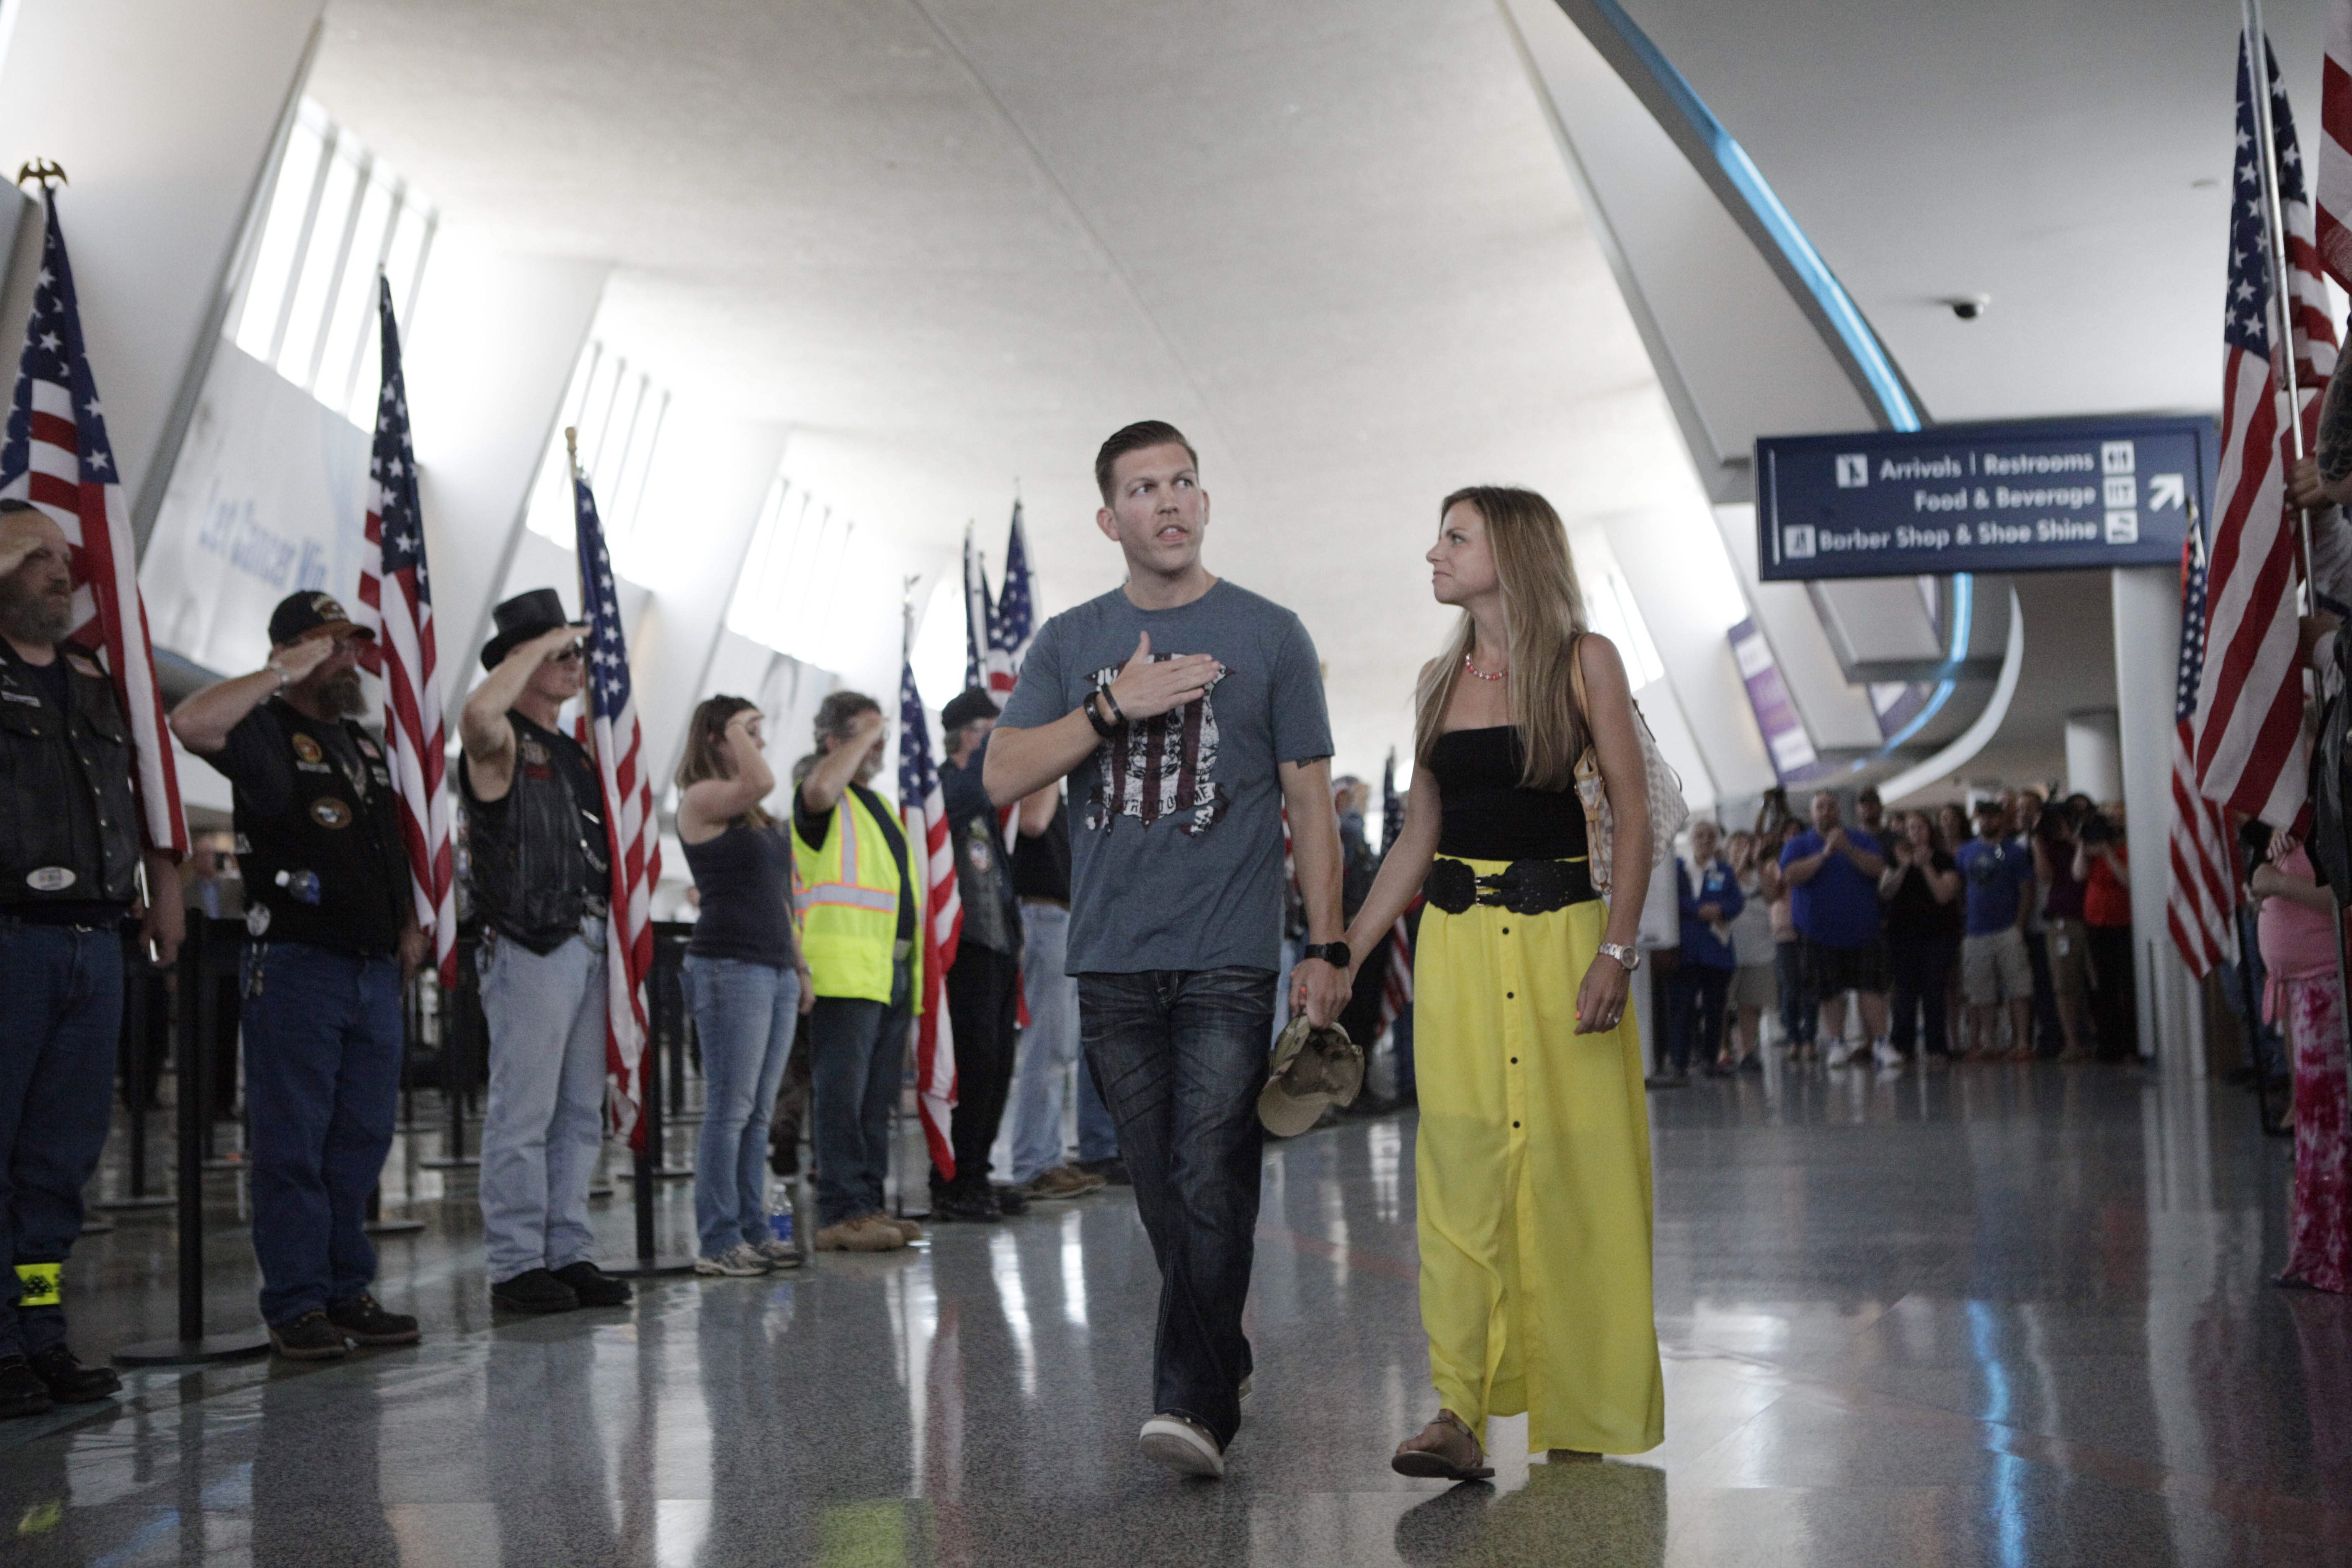 Maj. Patrick Miller and his wife, Ashley, walk through a row of Patriot Guard Riders and supporters holding flags after arriving Friday at Buffalo Niagara International Airport.